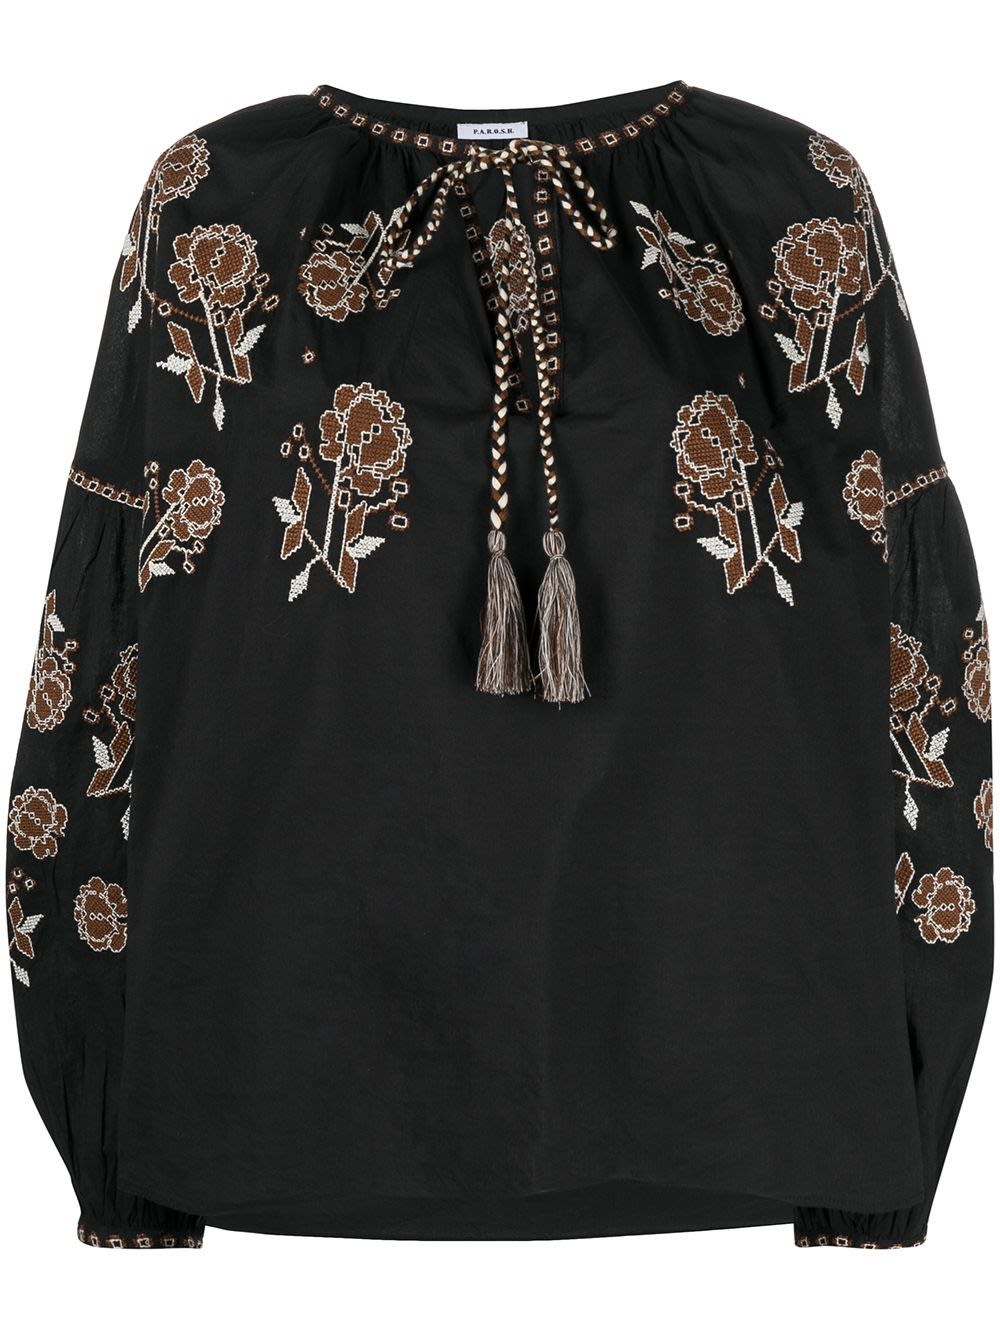 P.A.R.O.S.H. COTTON BLOUSE WITH FLORAL EMBROIDERY